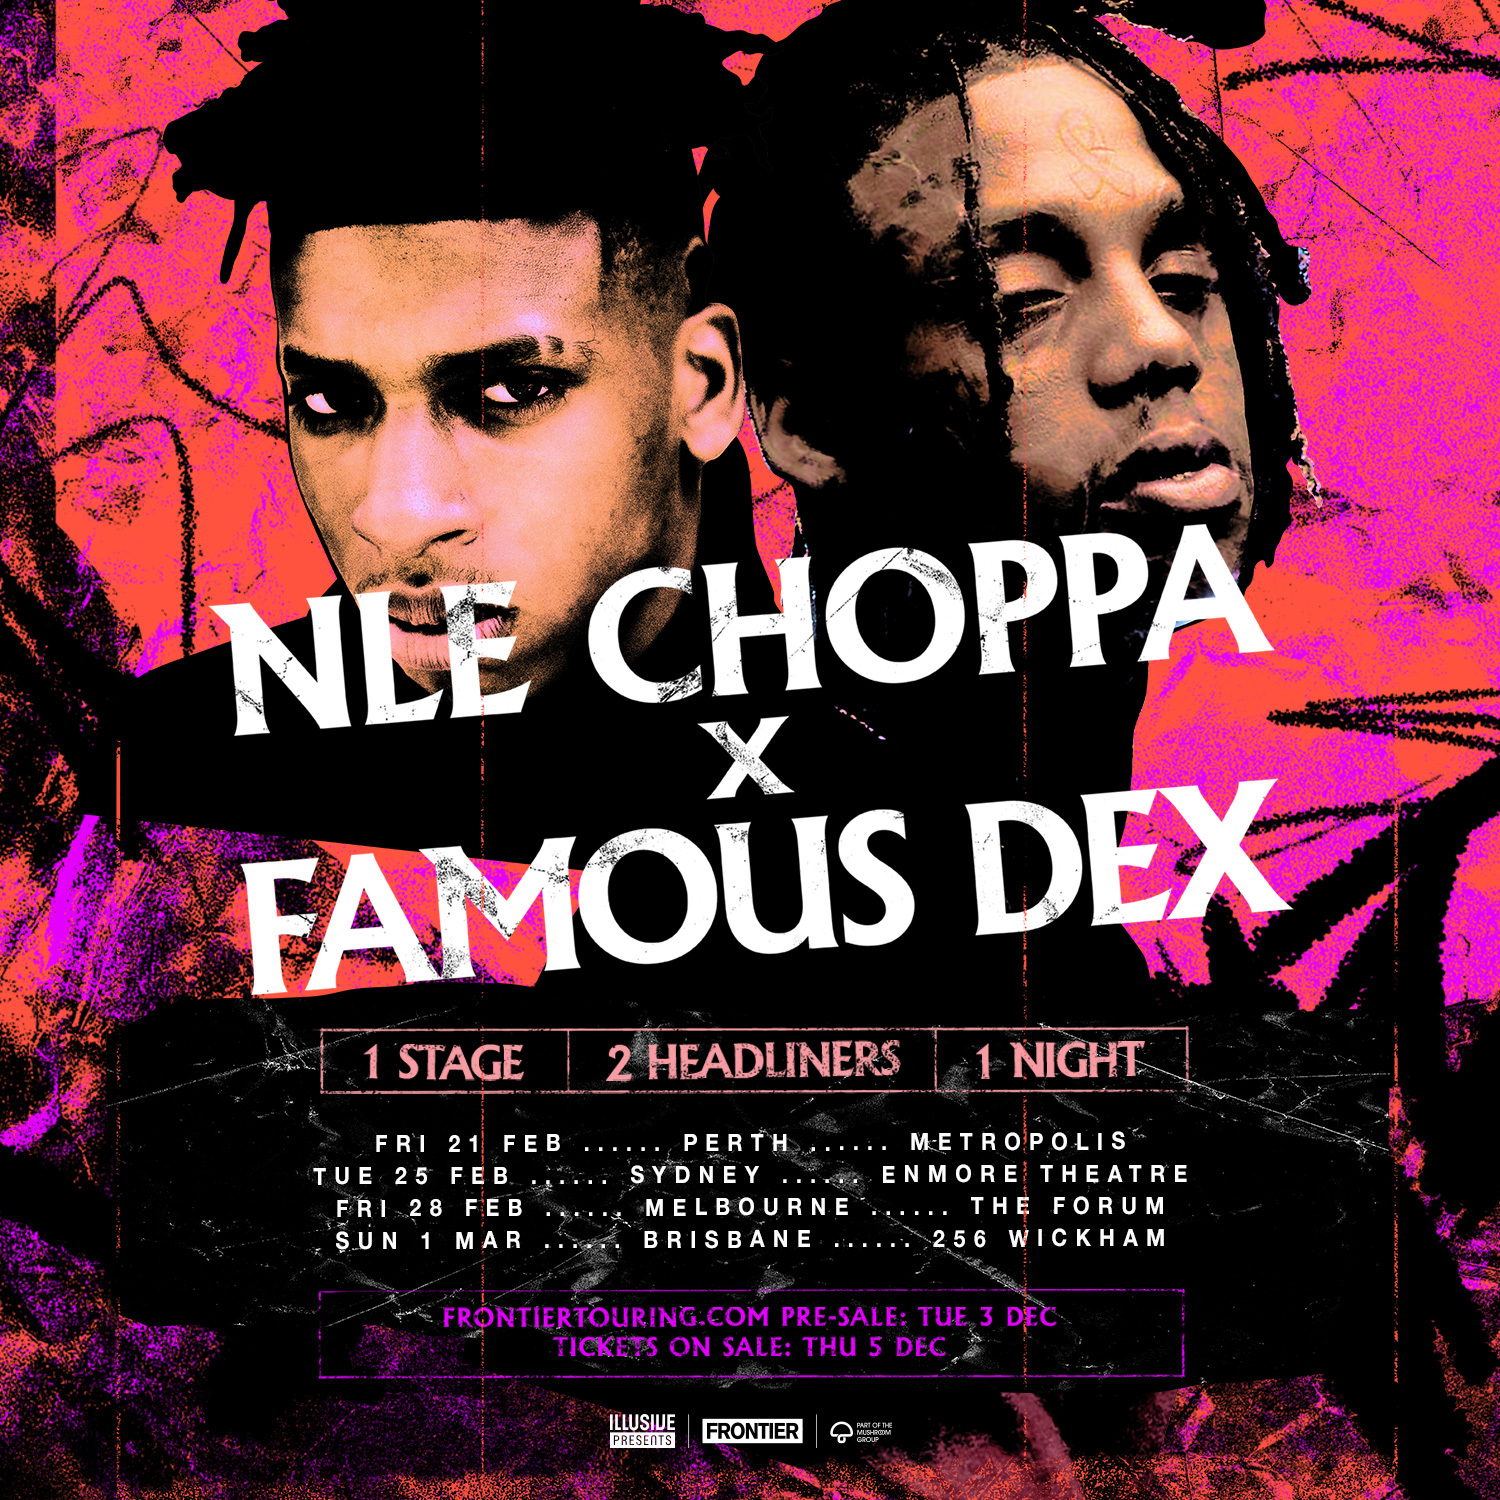 NLE CHOPPA & FAMOUS DEX MAKE THEIR AUSTRALIAN DEBUT IN FEBRUARY/MARCH 2020